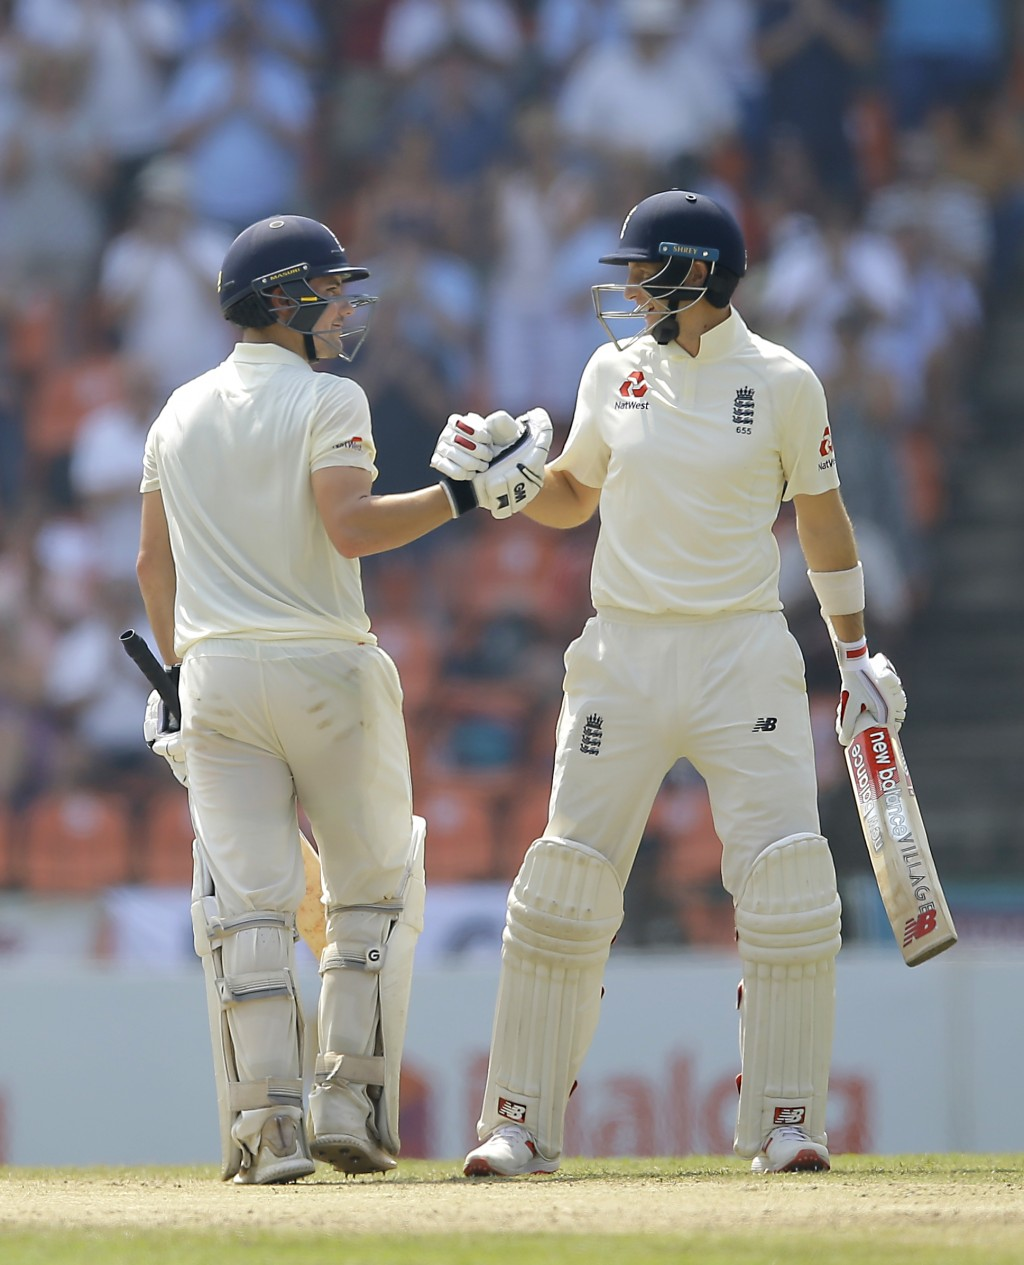 England's captain Joe Root, right, congratulates Rory Burns for scoring a half century during the third day's play of the second test cricket match be